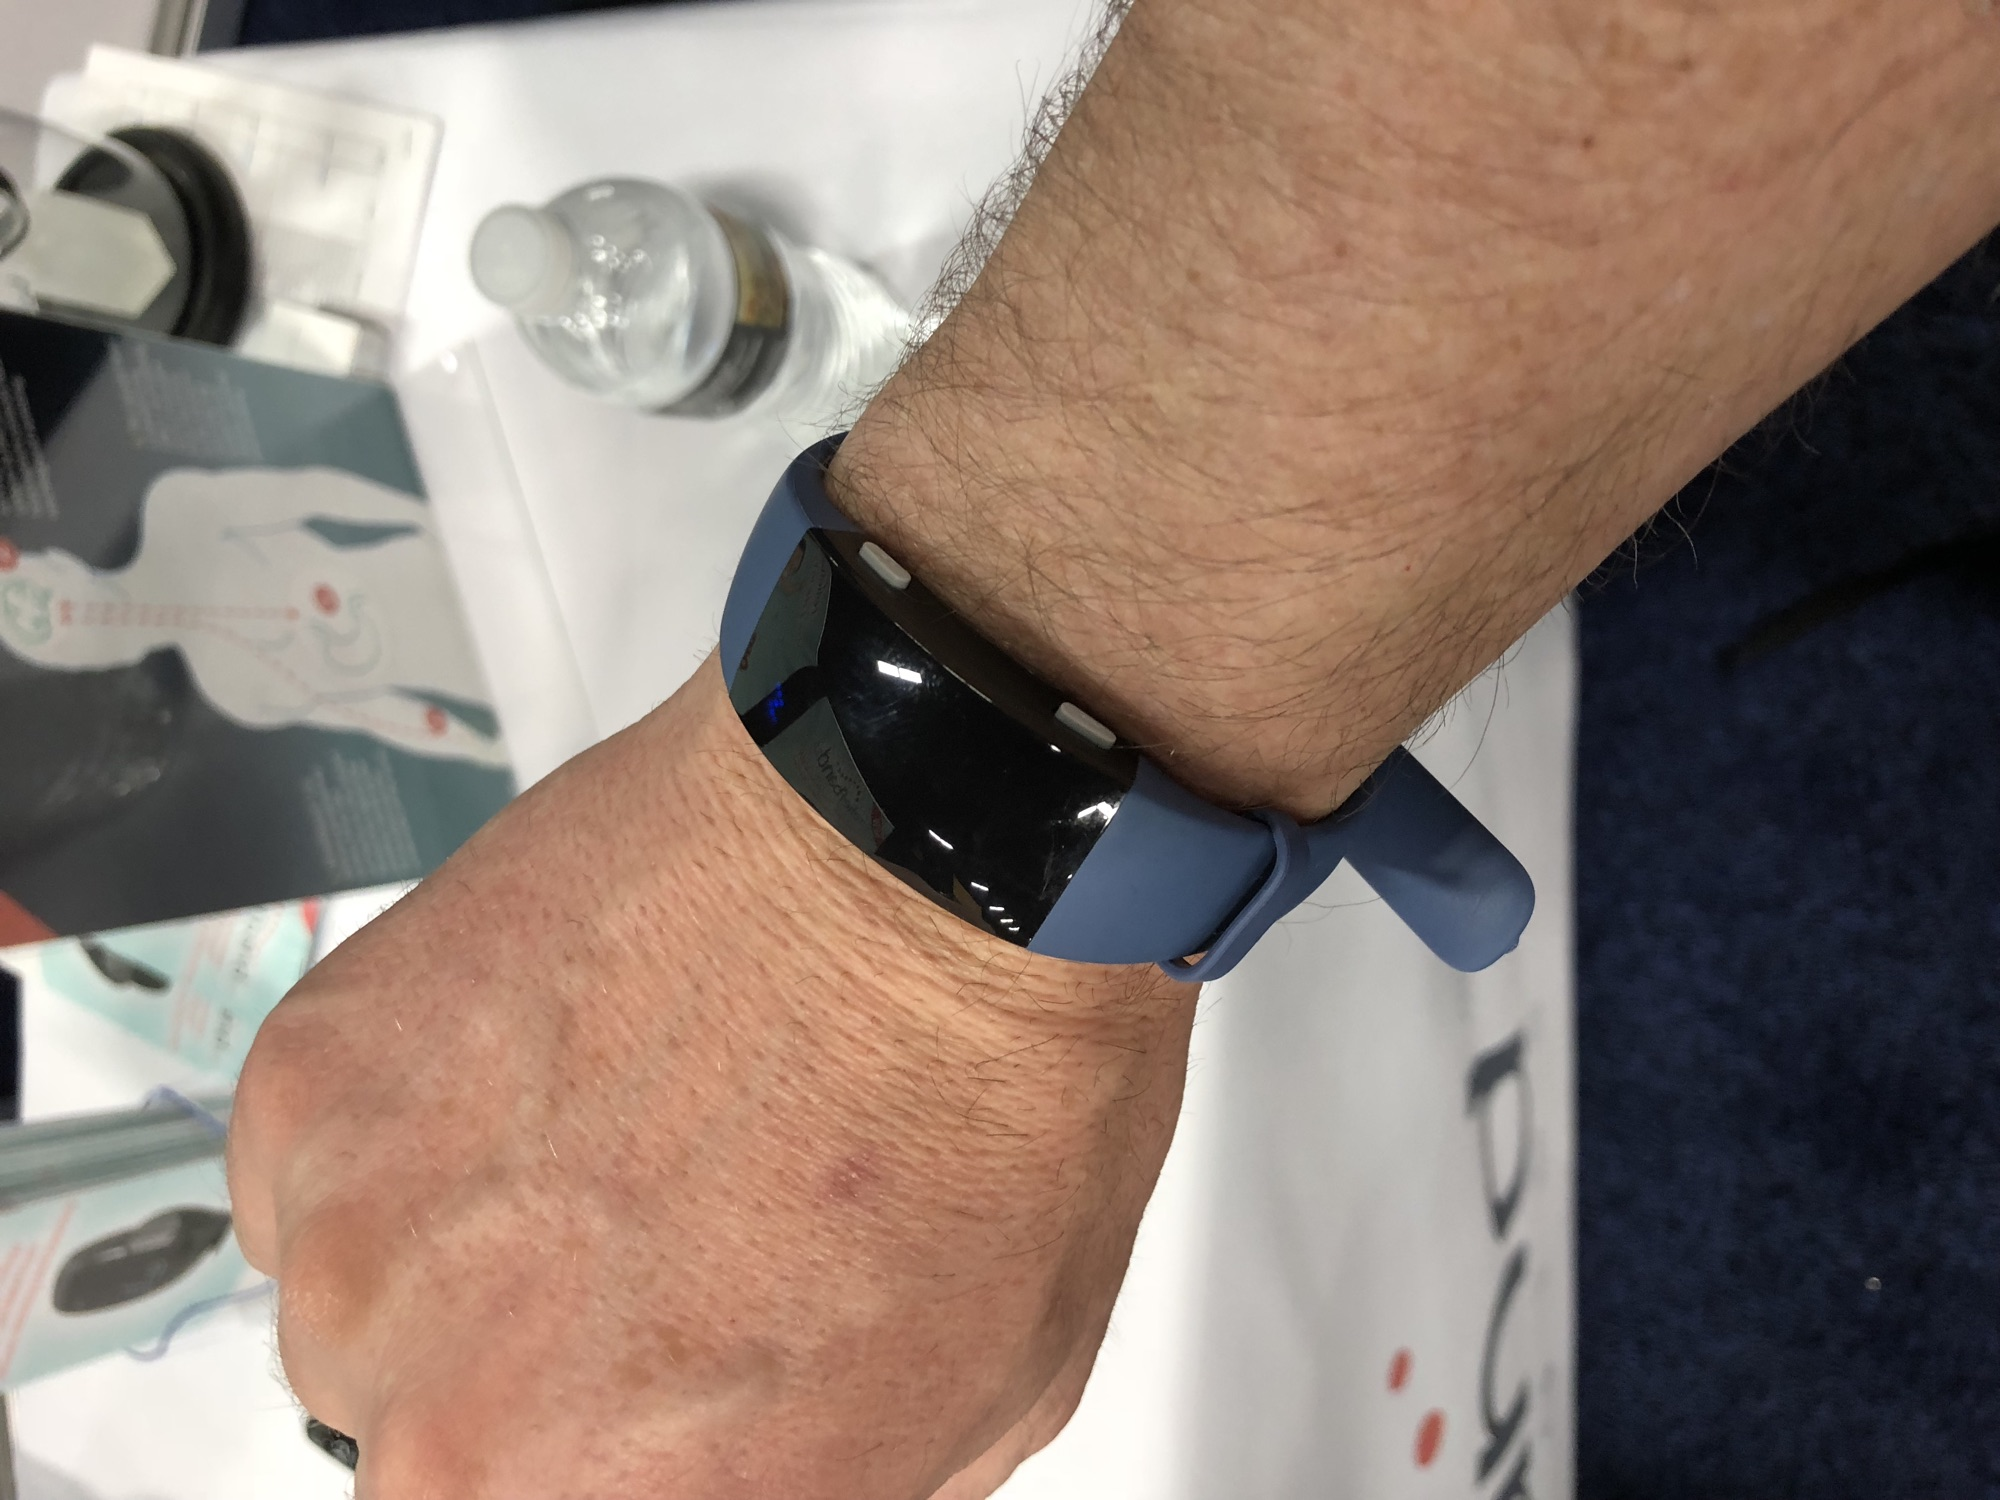 CES – Reliefband 2.0 Uses Acupressure and TENS to Prevent Nausea for 24 Hours